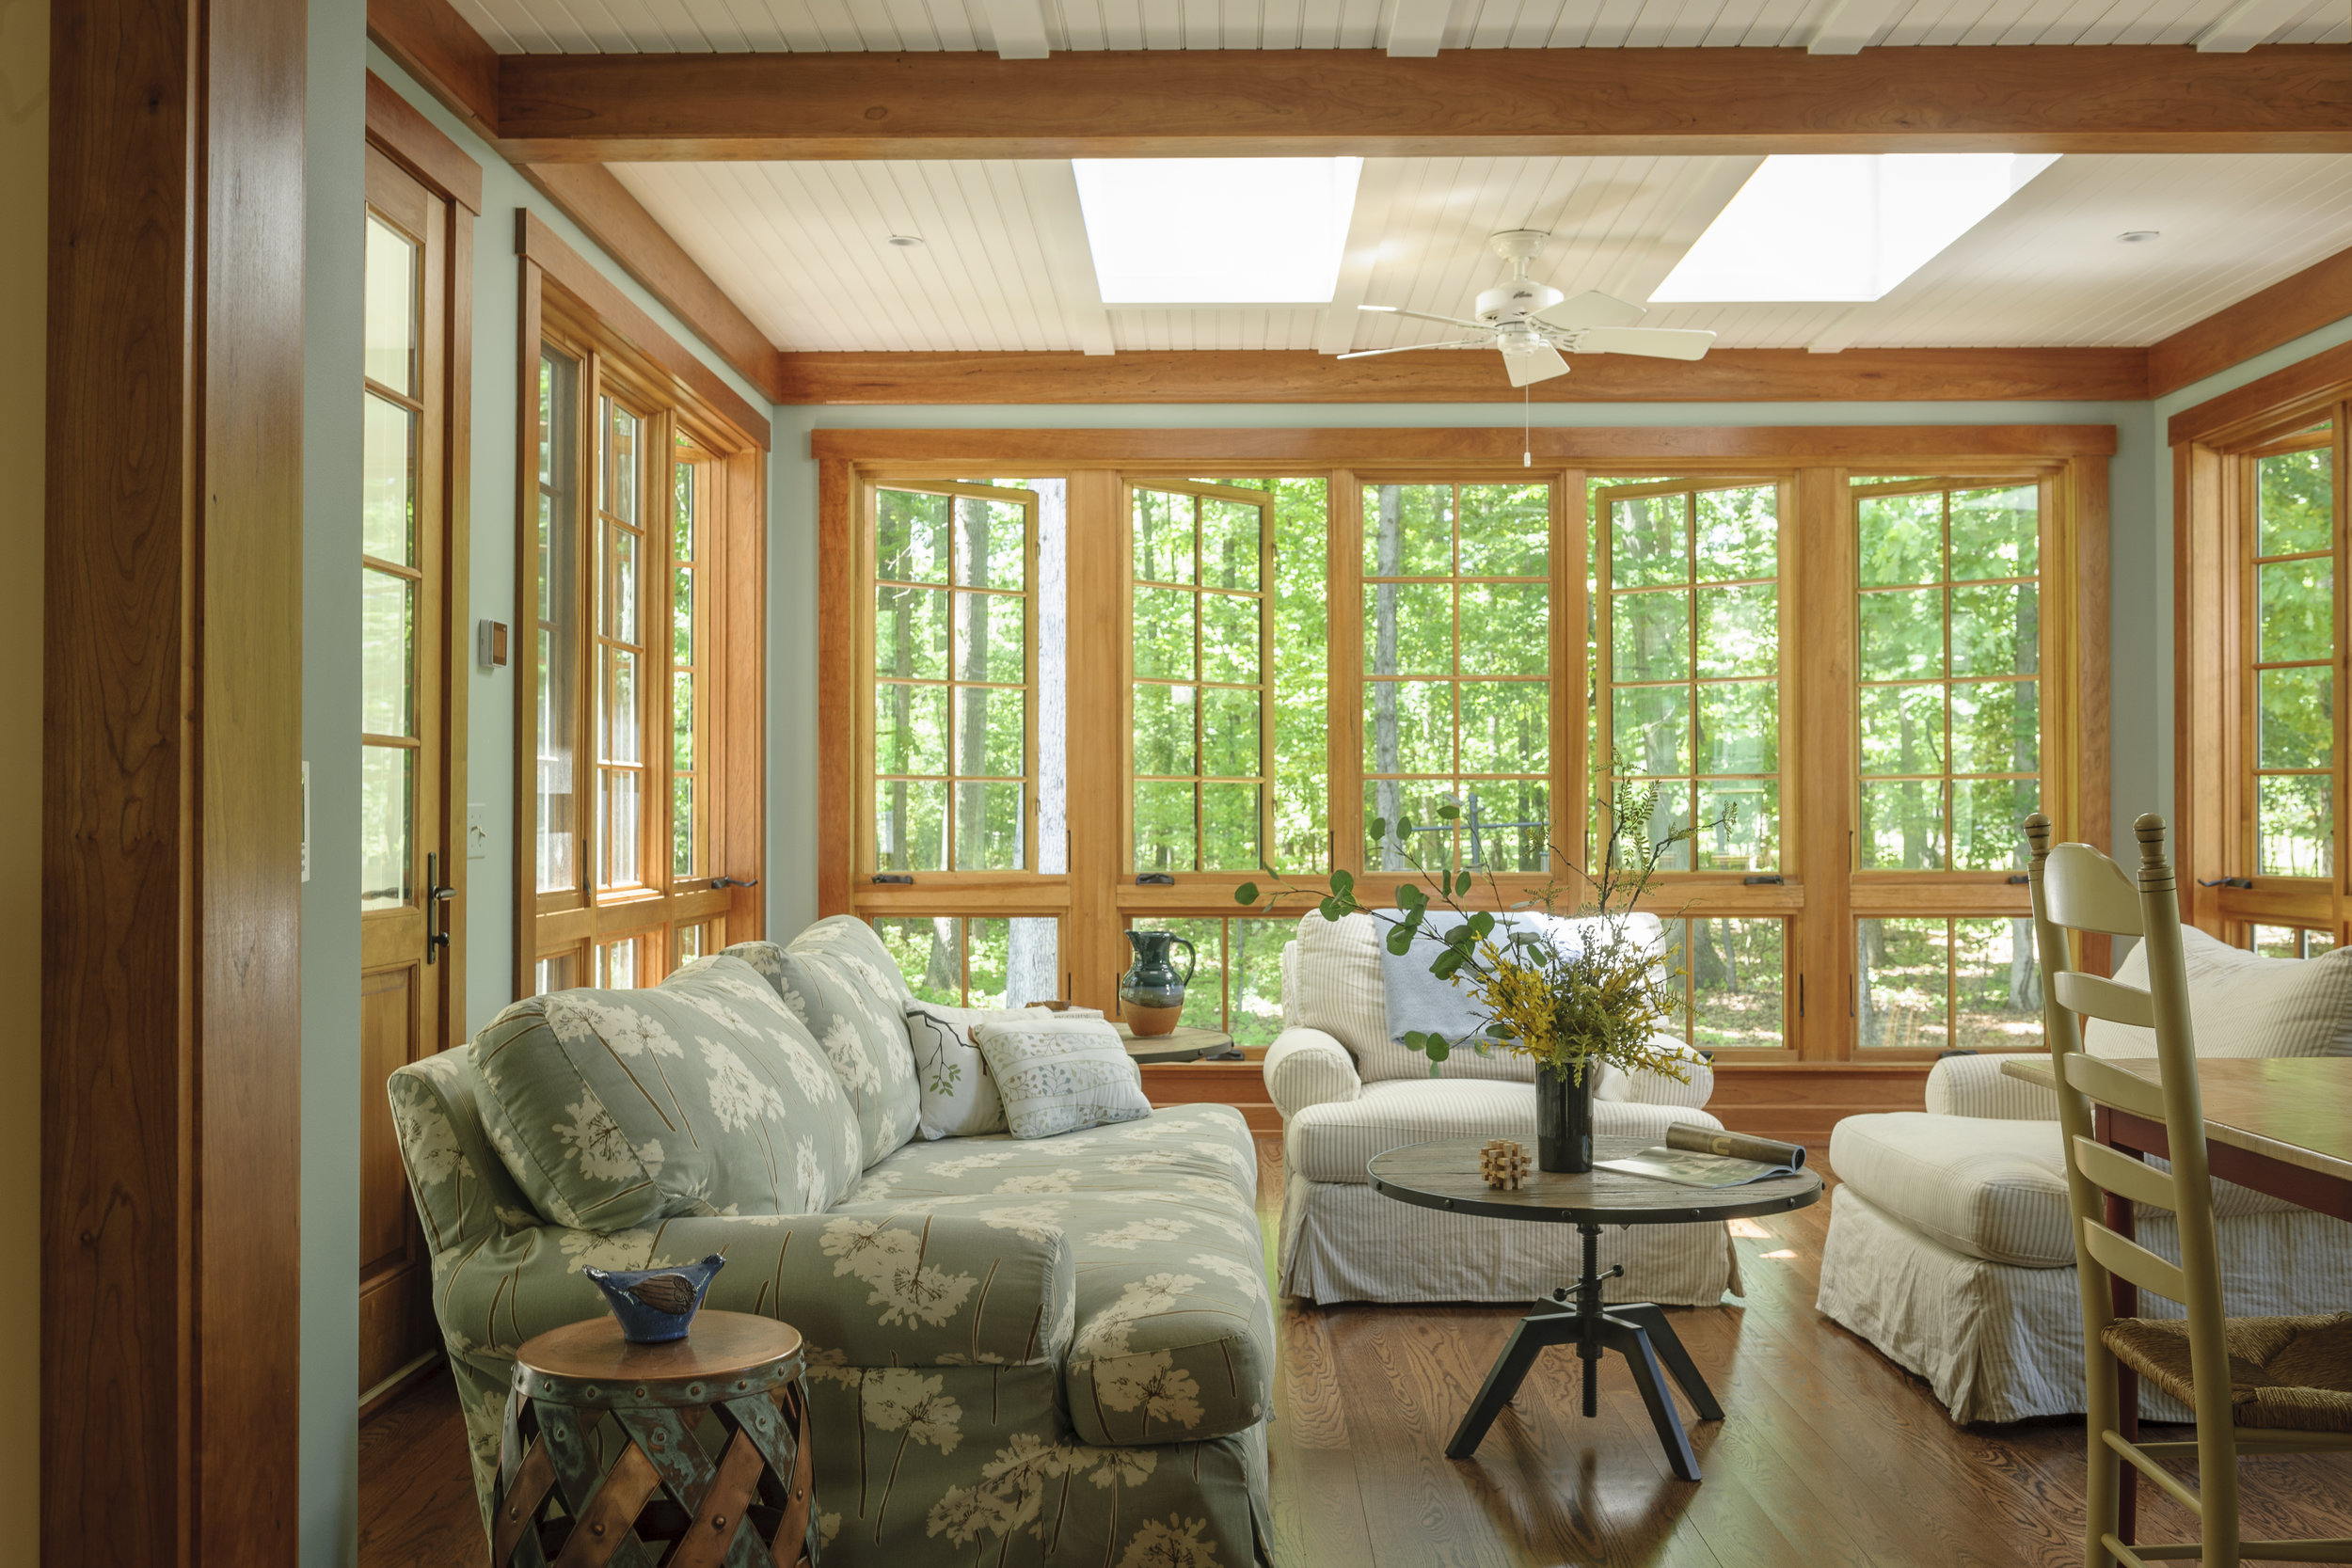 Clites_craftsmanbungalow_sunroom.jpg